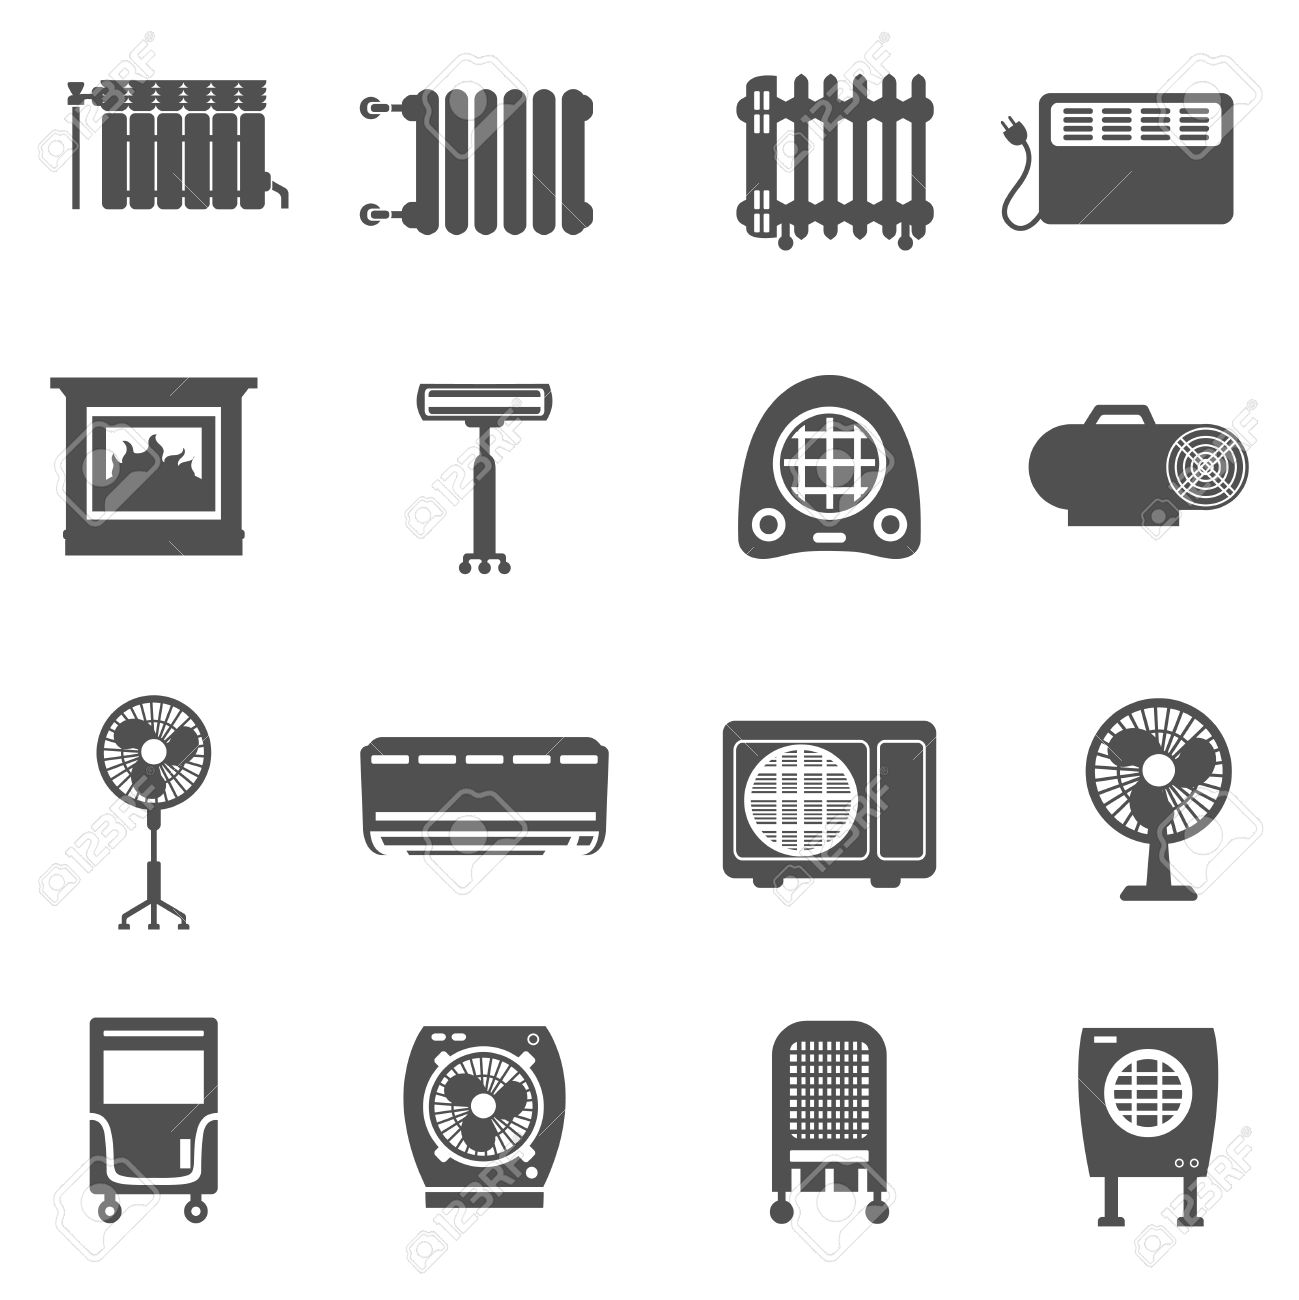 heating cooling icon. heating and cooling conditioning system black icon set isolated vector illustration stock - 41538850 s